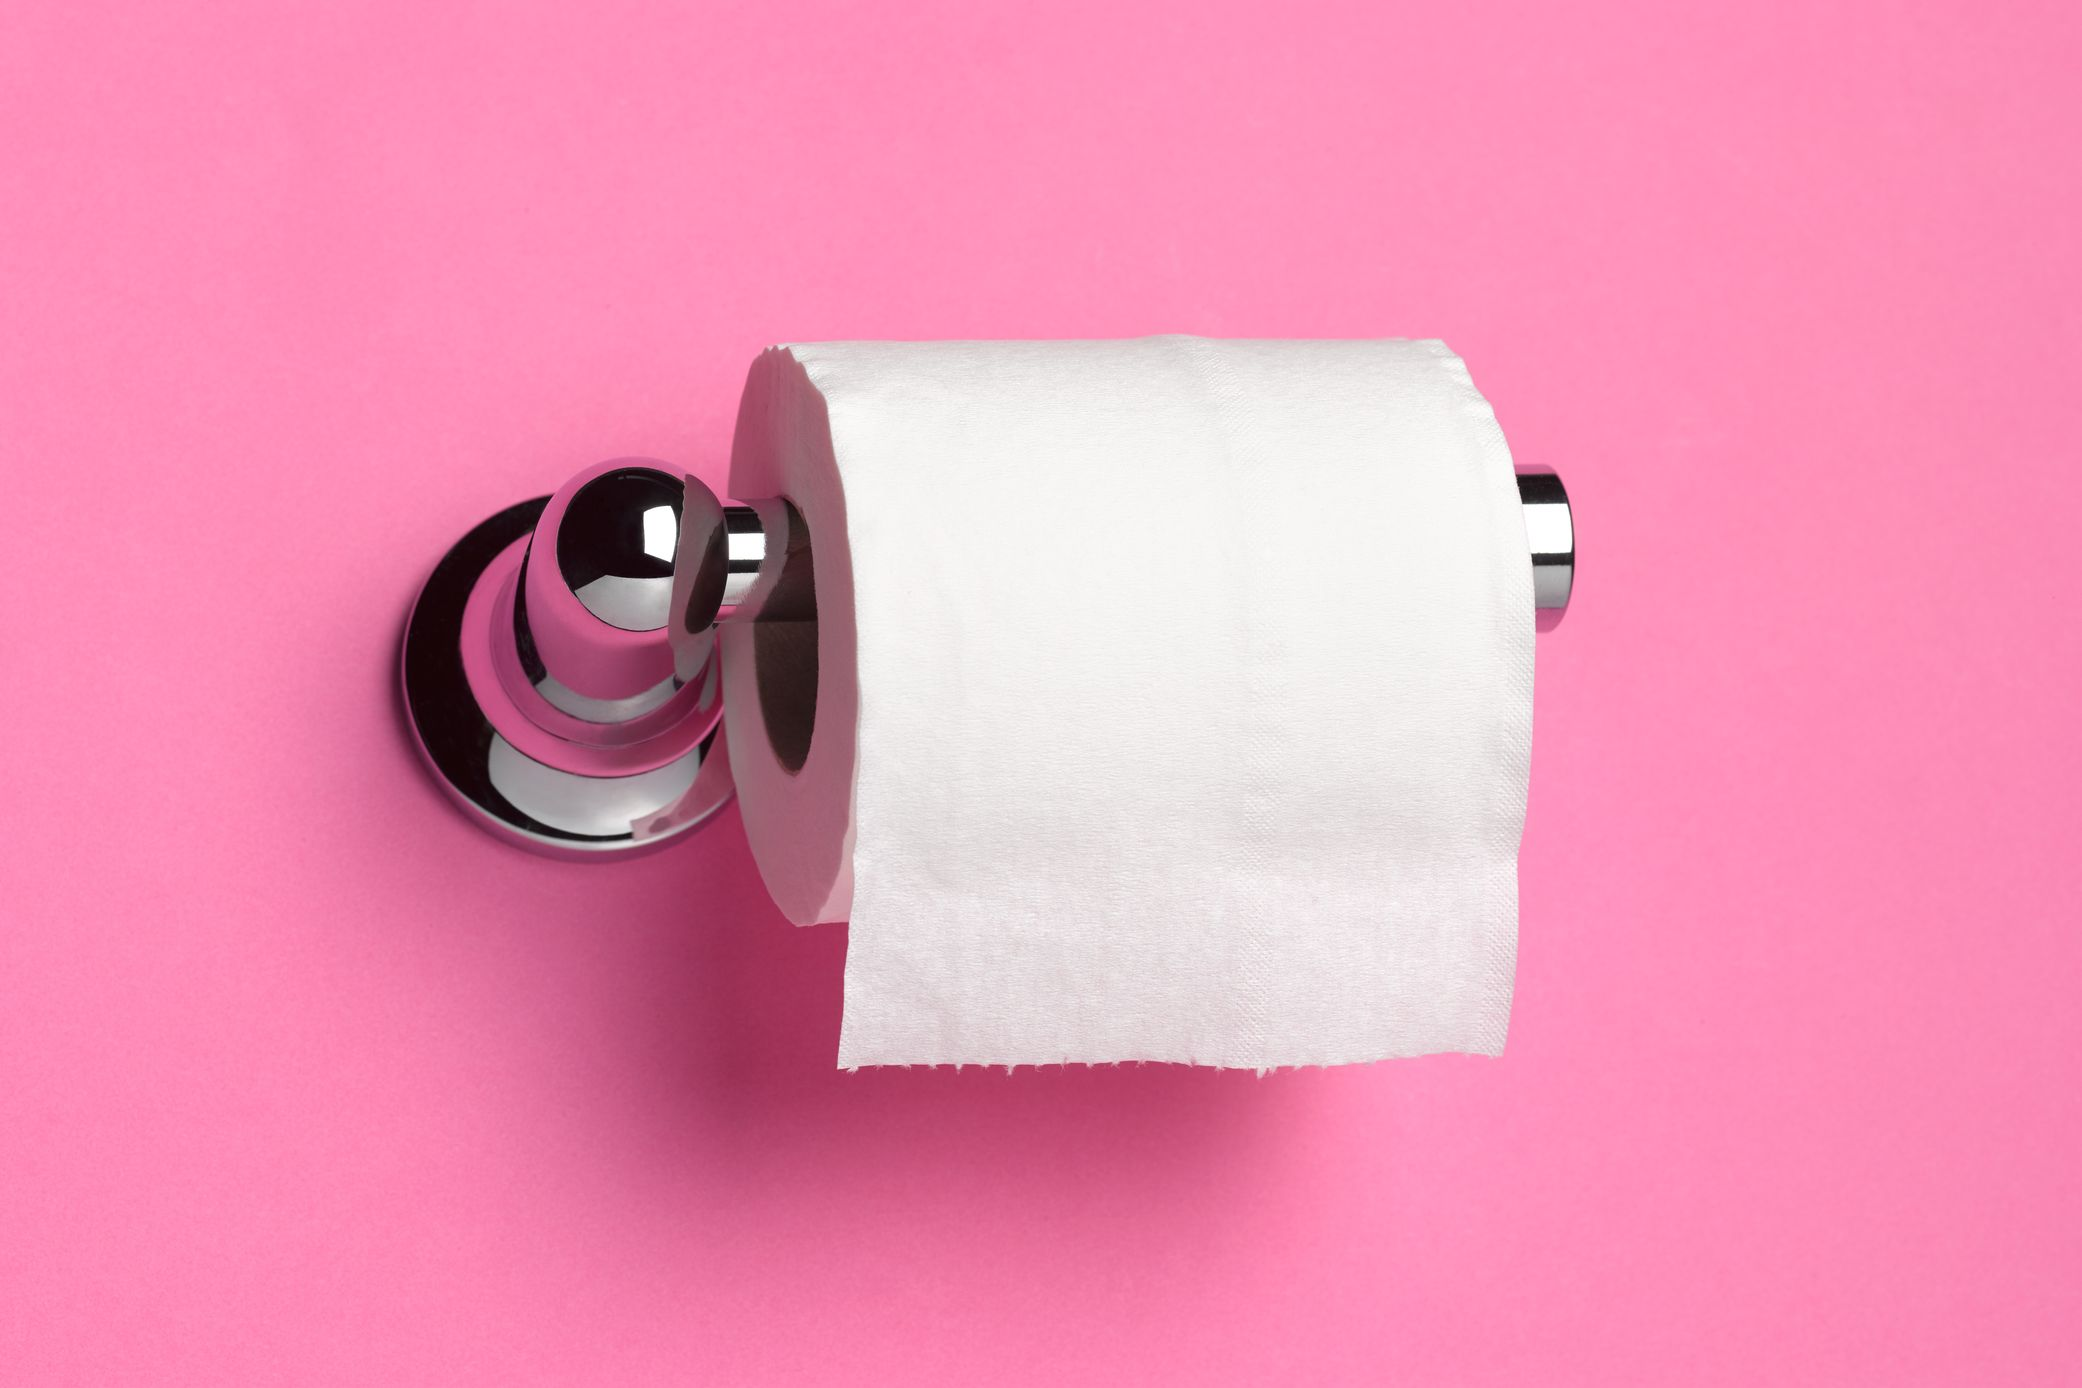 Roll of toilet paper on dispenser in front of pink bathroom wall.